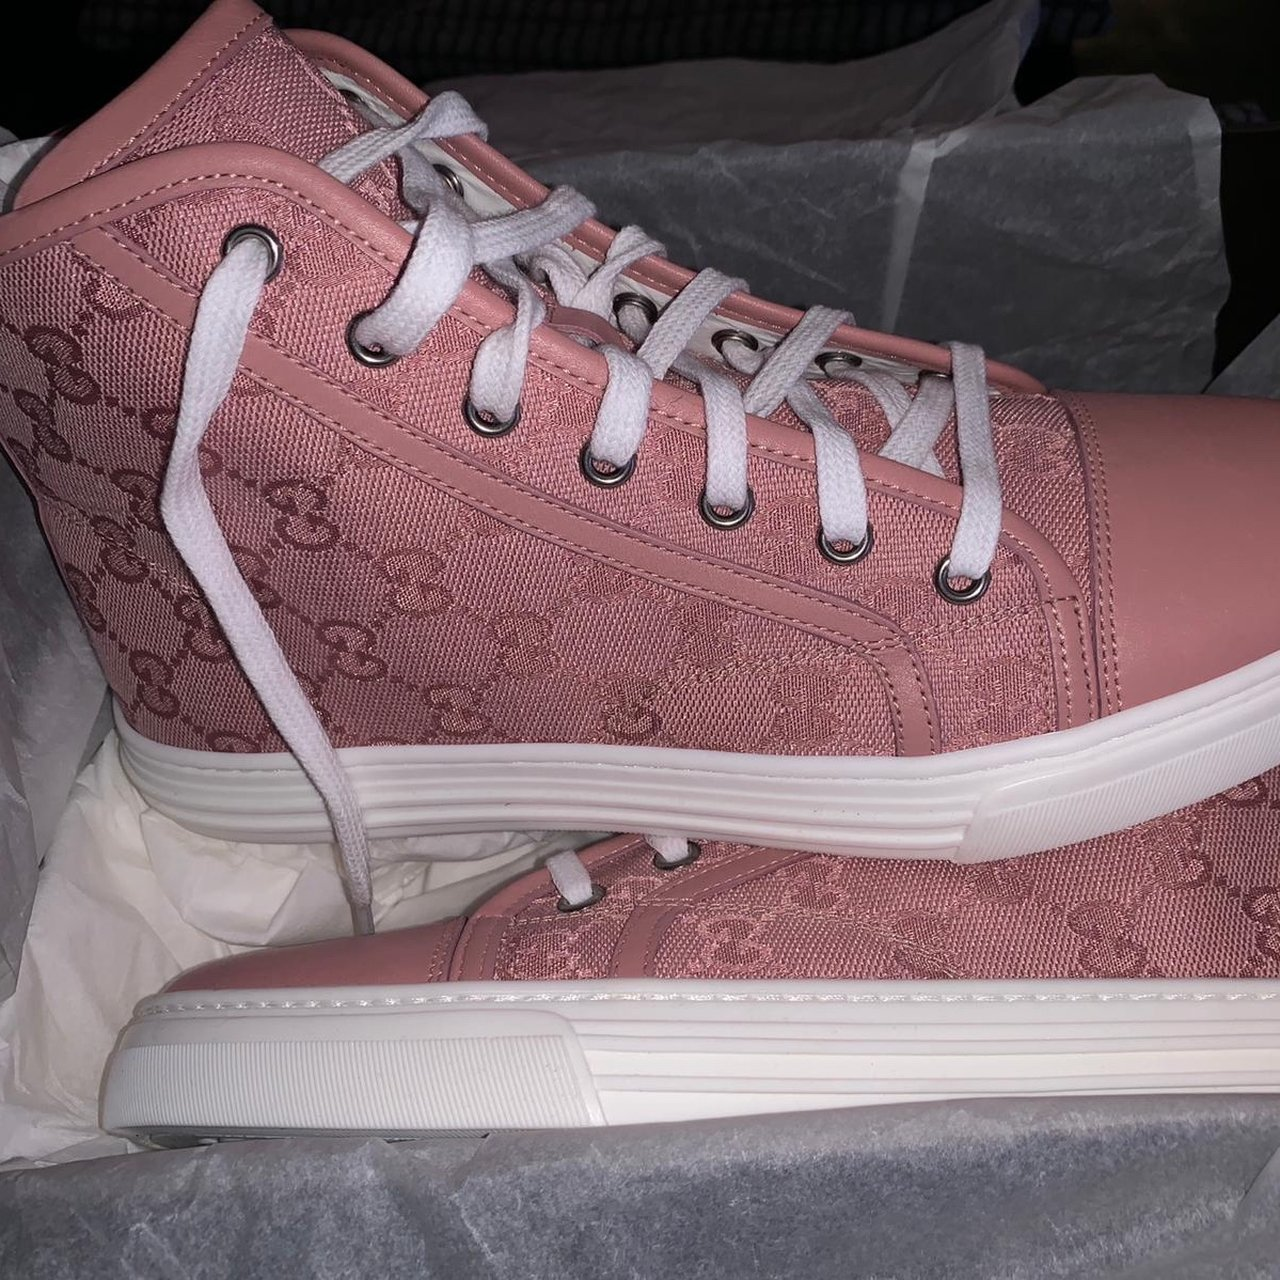 Brand new pink Gucci trainers. Comes